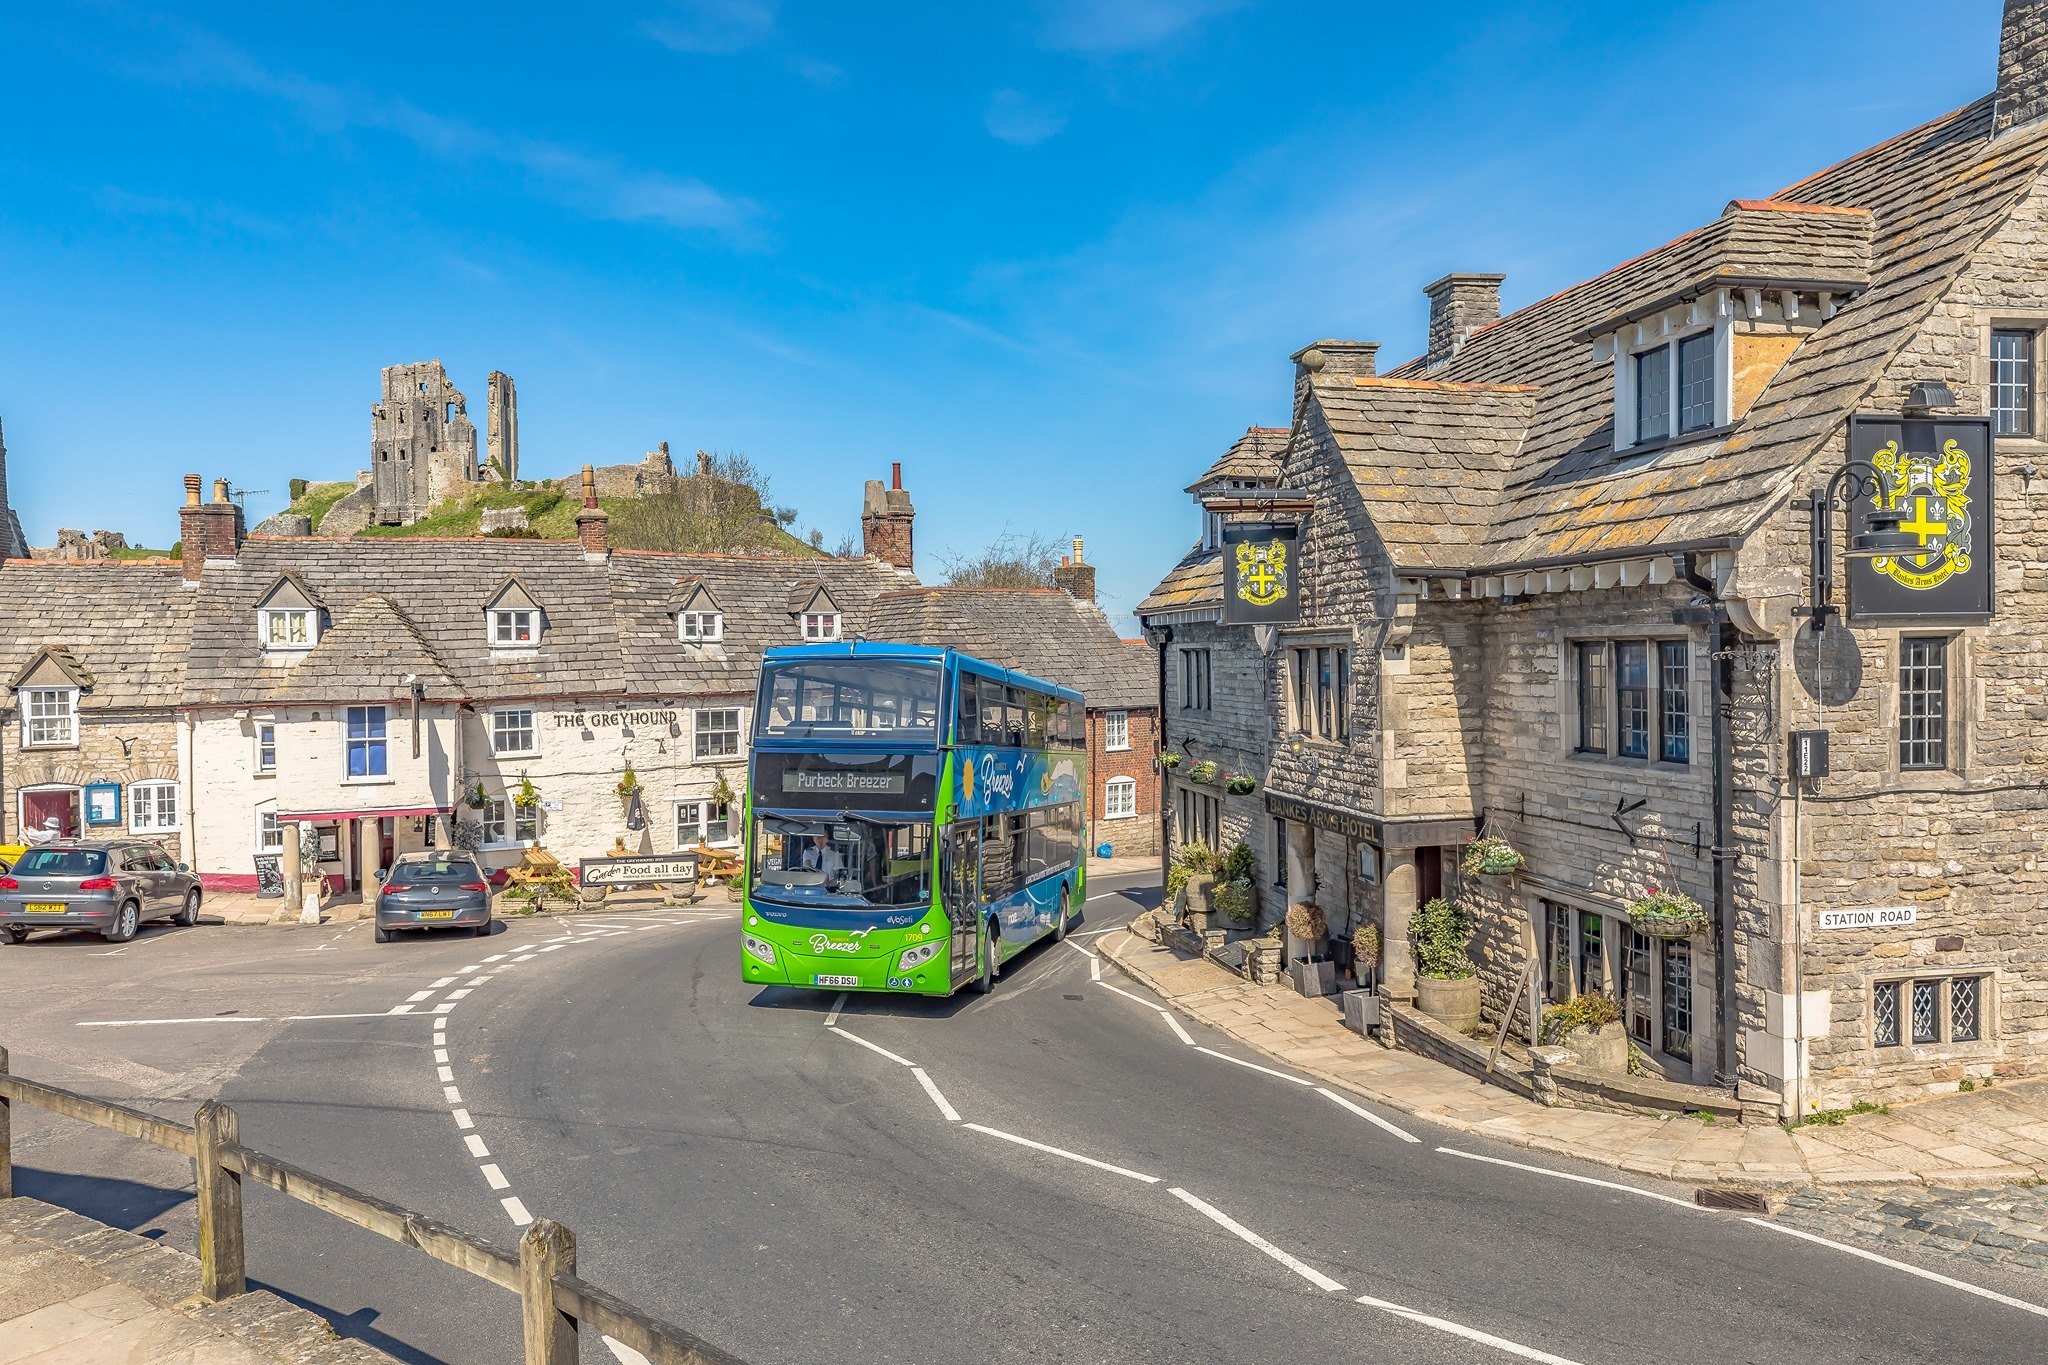 Photo of a Purbeck Breezer bus at Corfe Castle